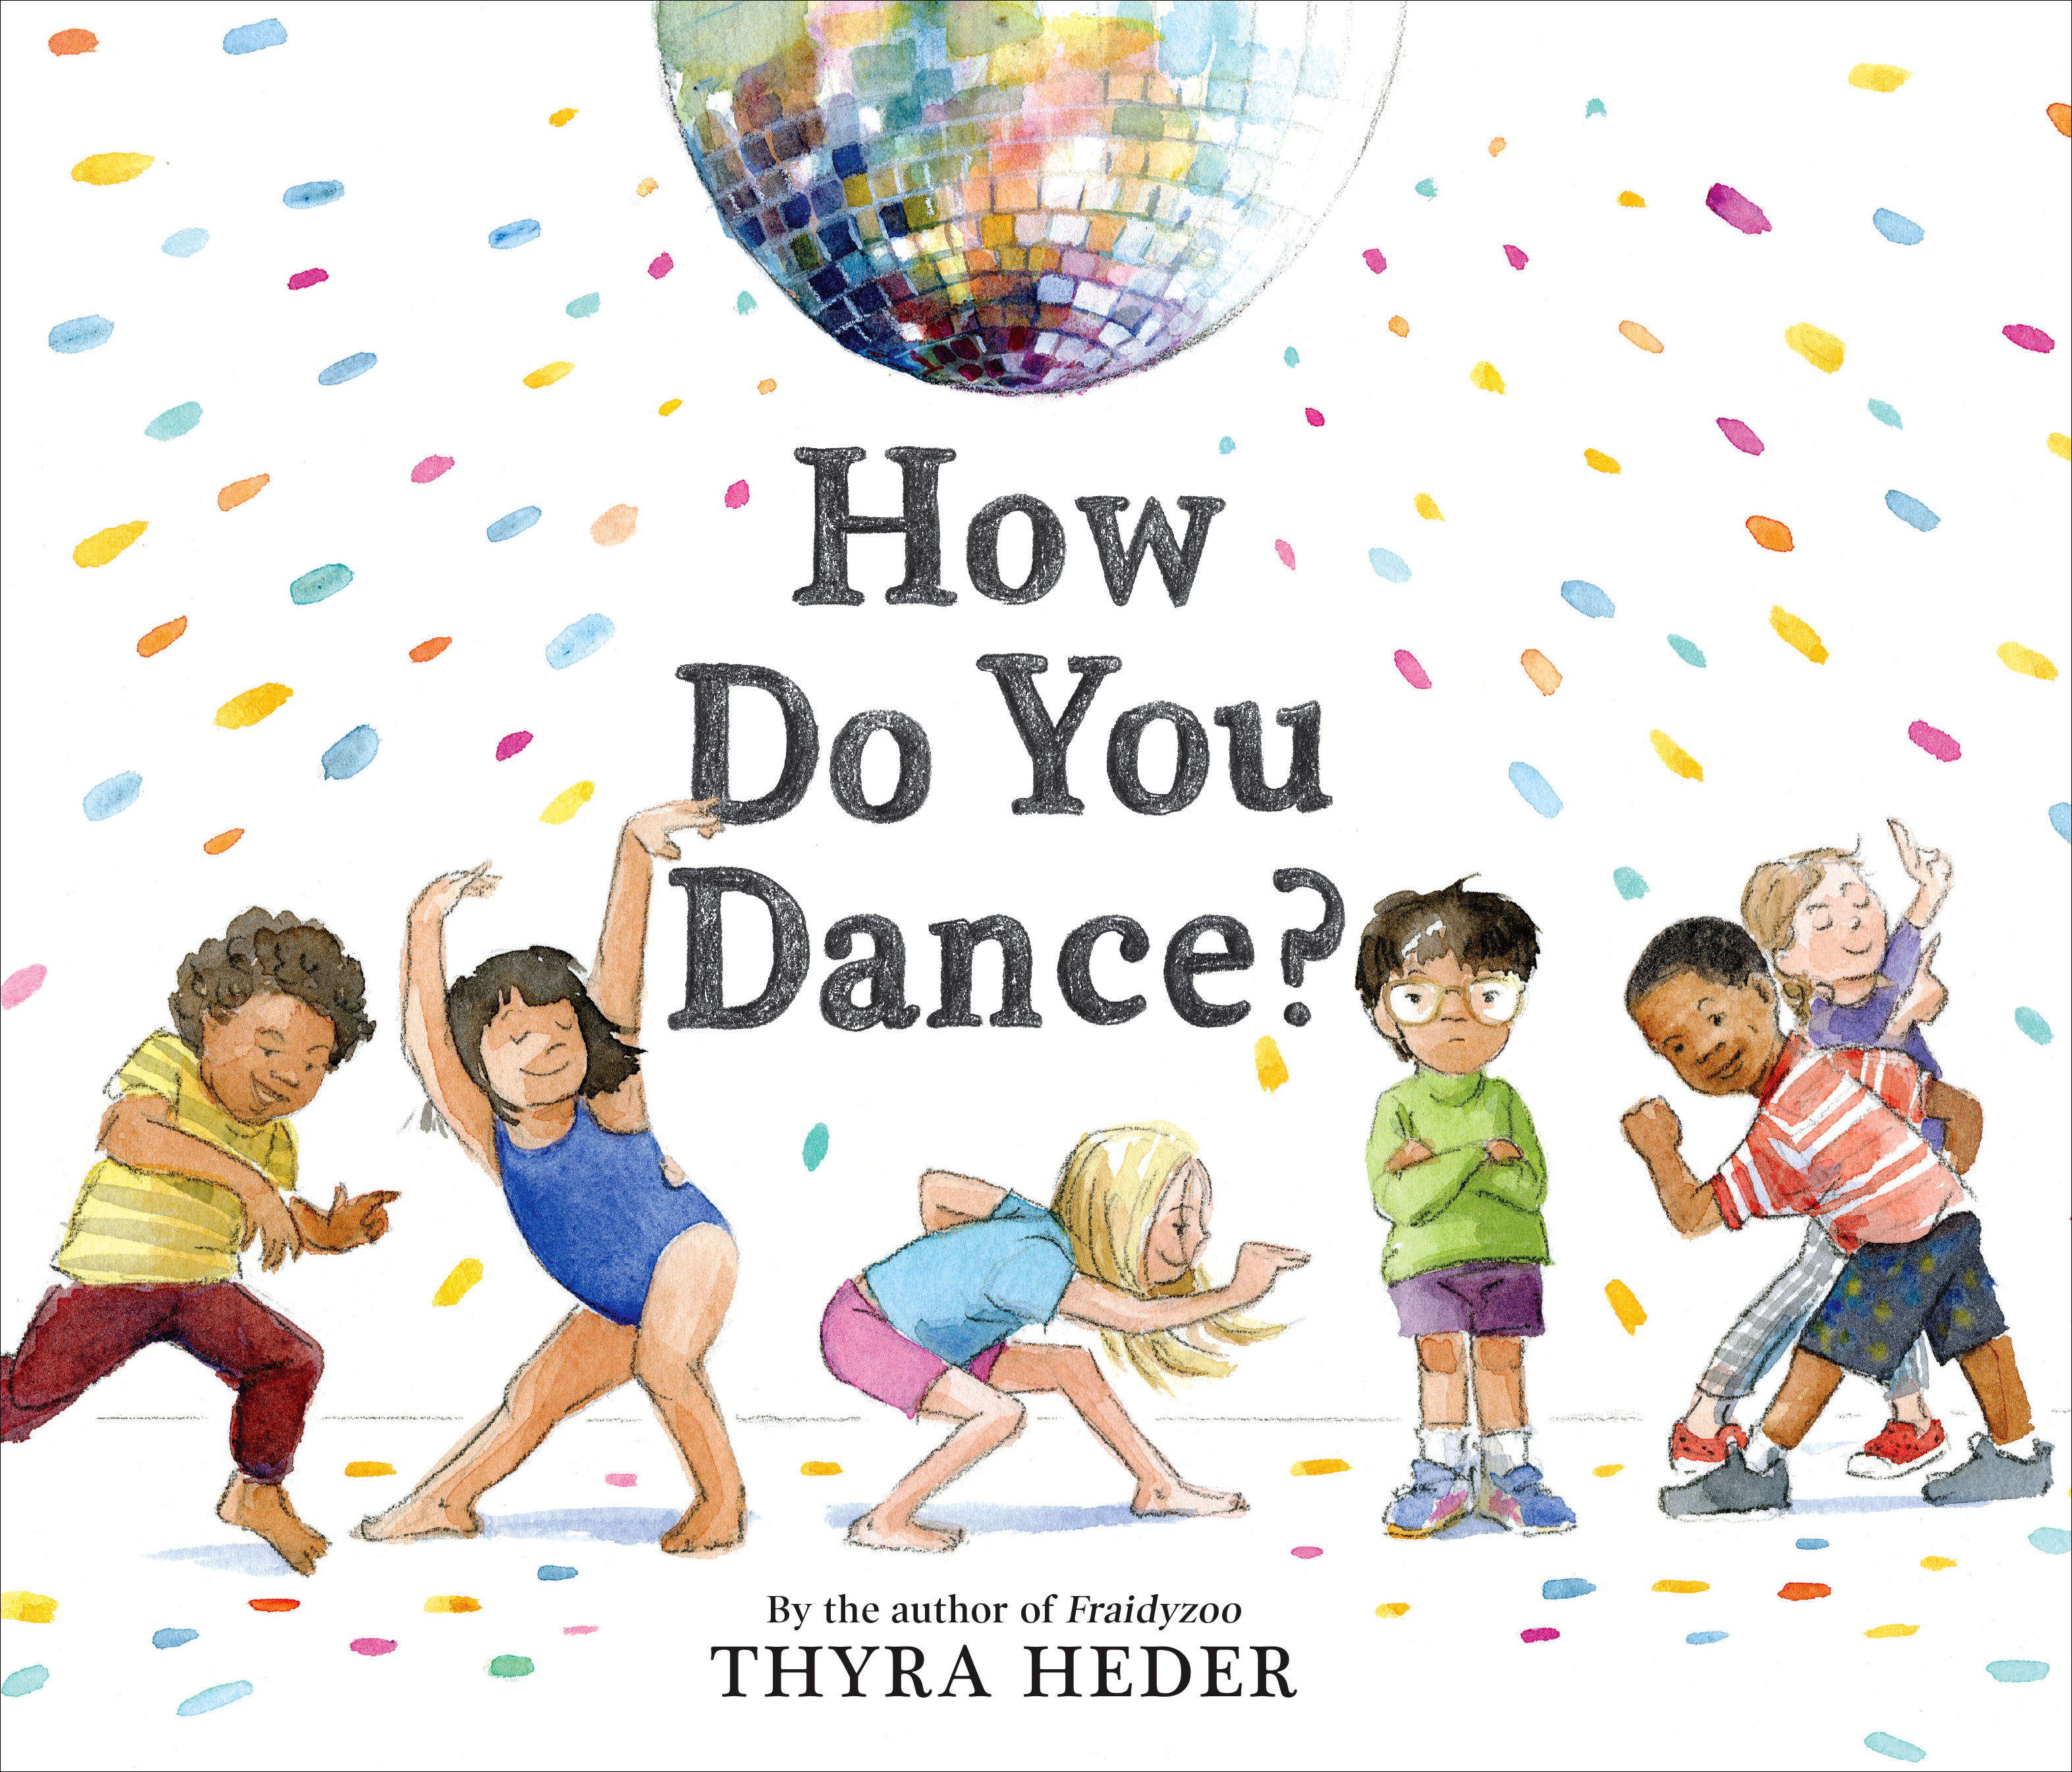 Sunday Story Time: How Do You Dance? by Thyra Heder